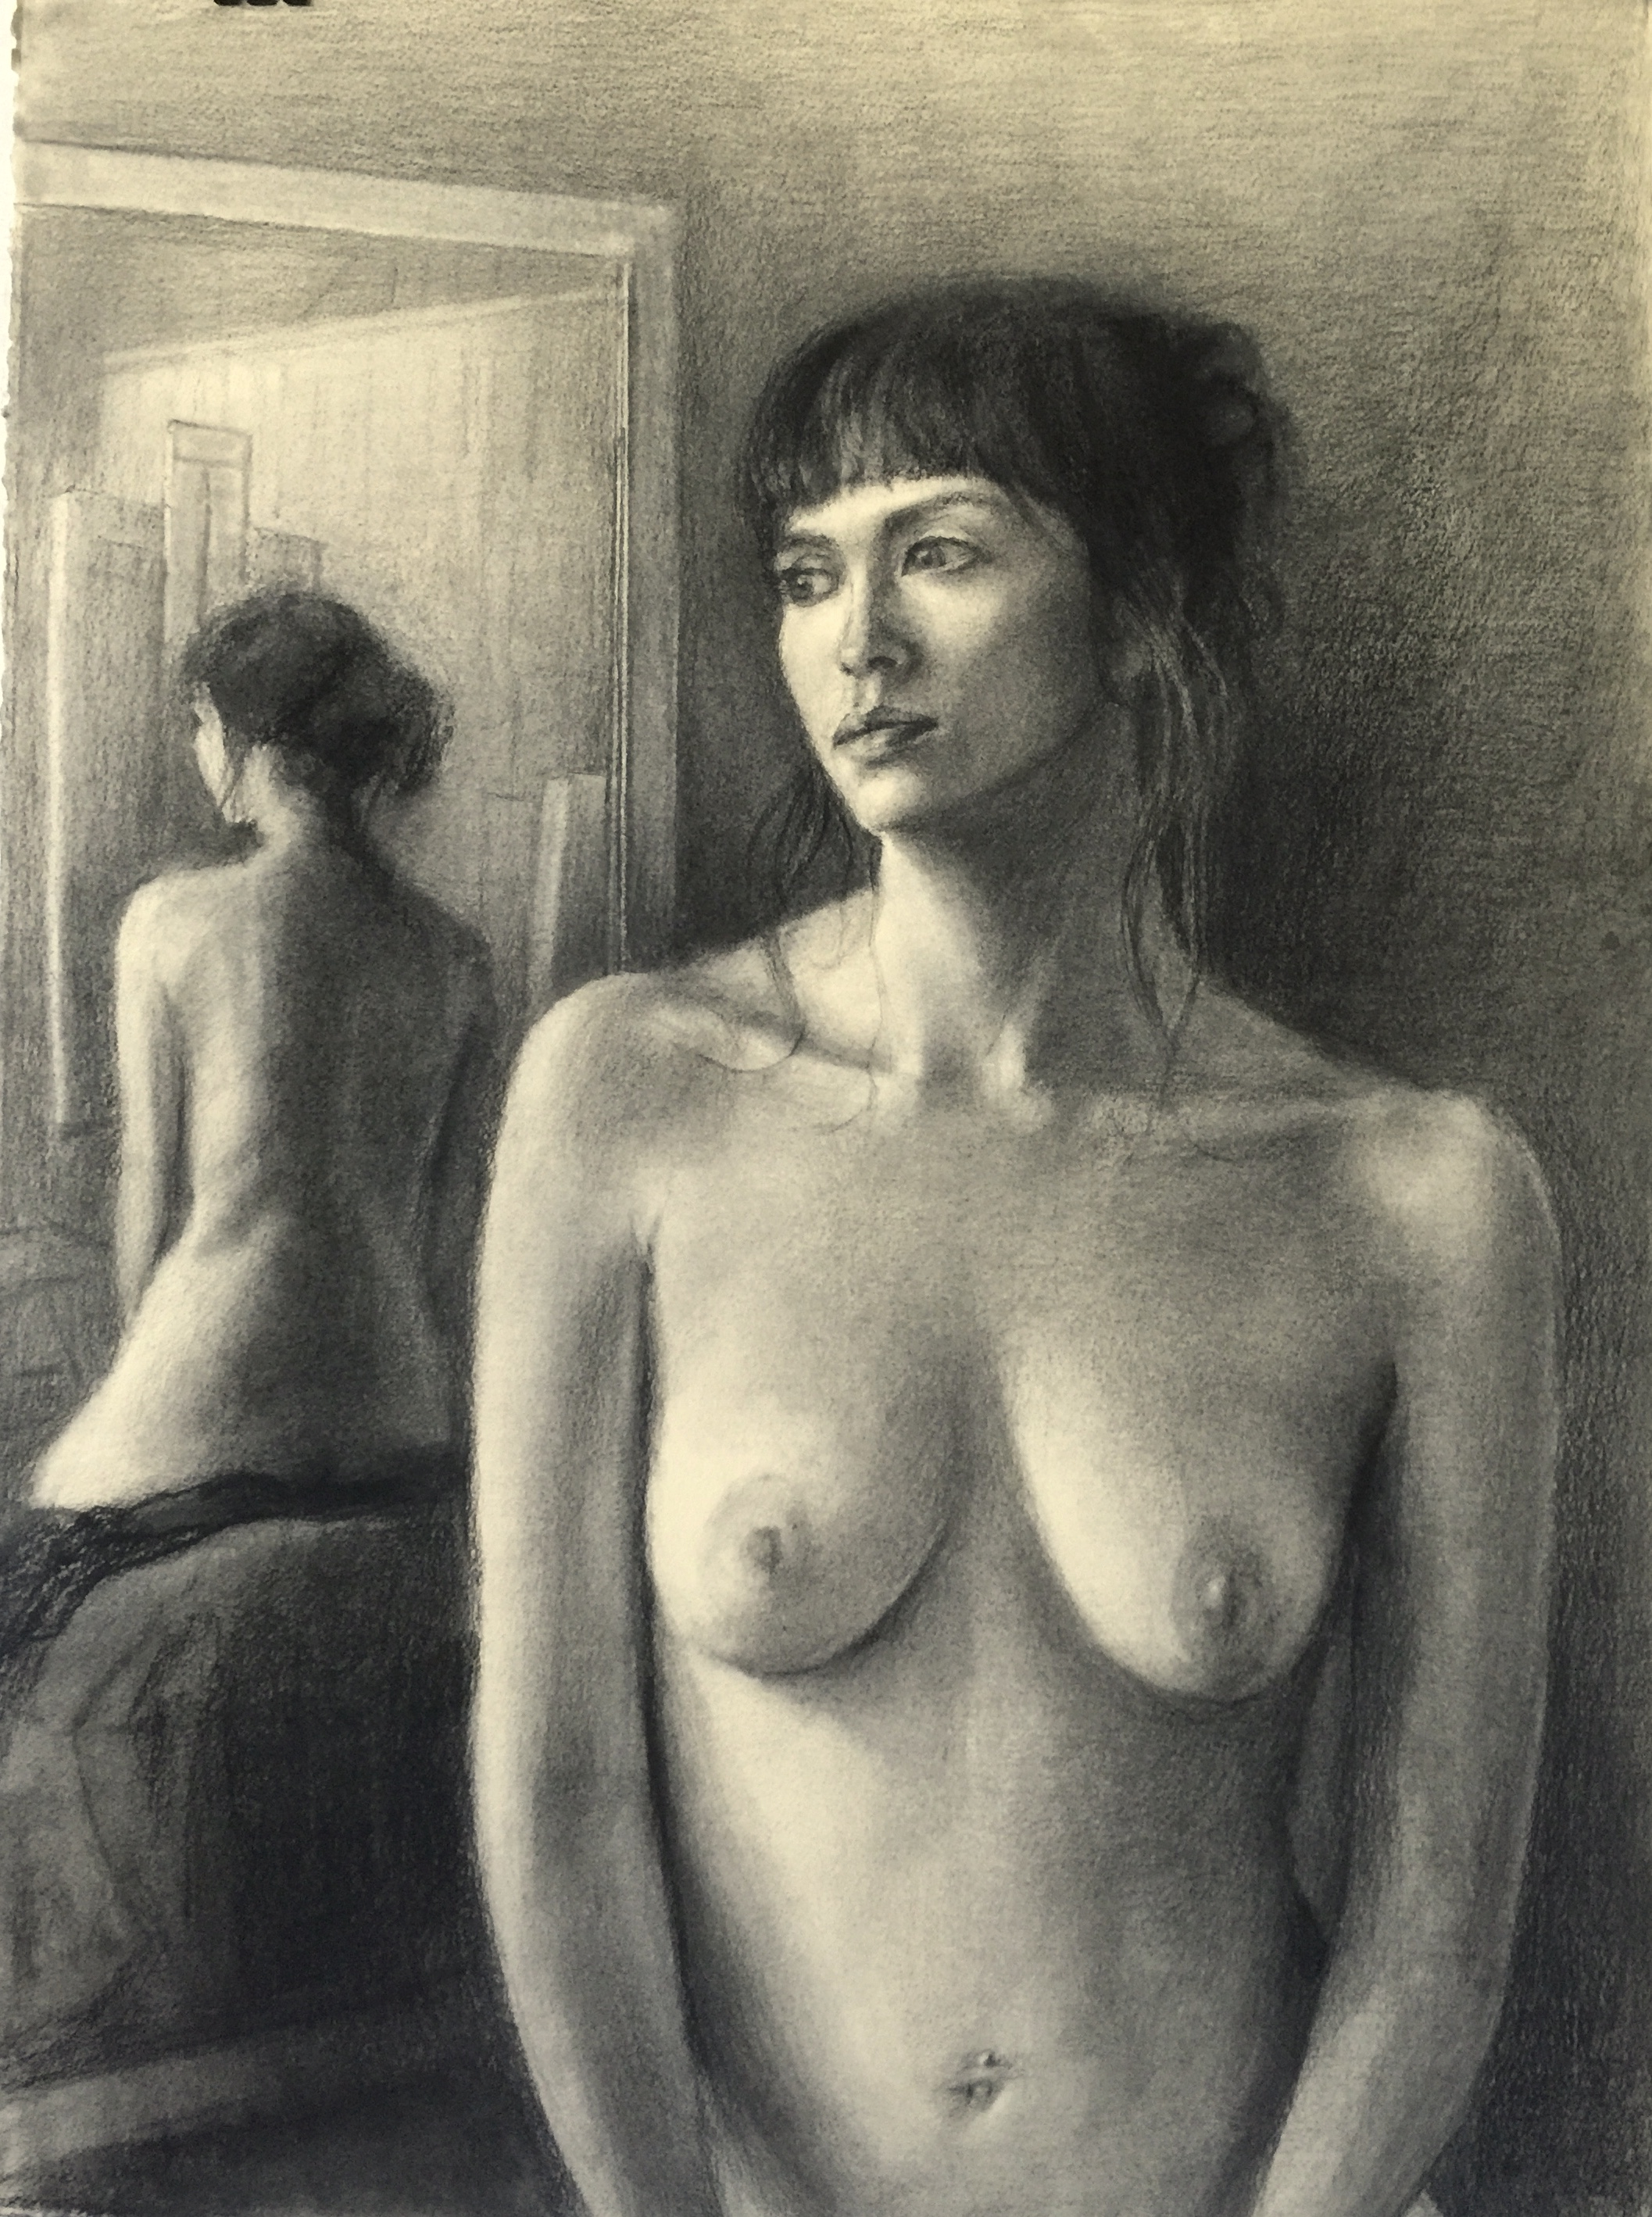 Charcoal Nude and Mirro Reflection